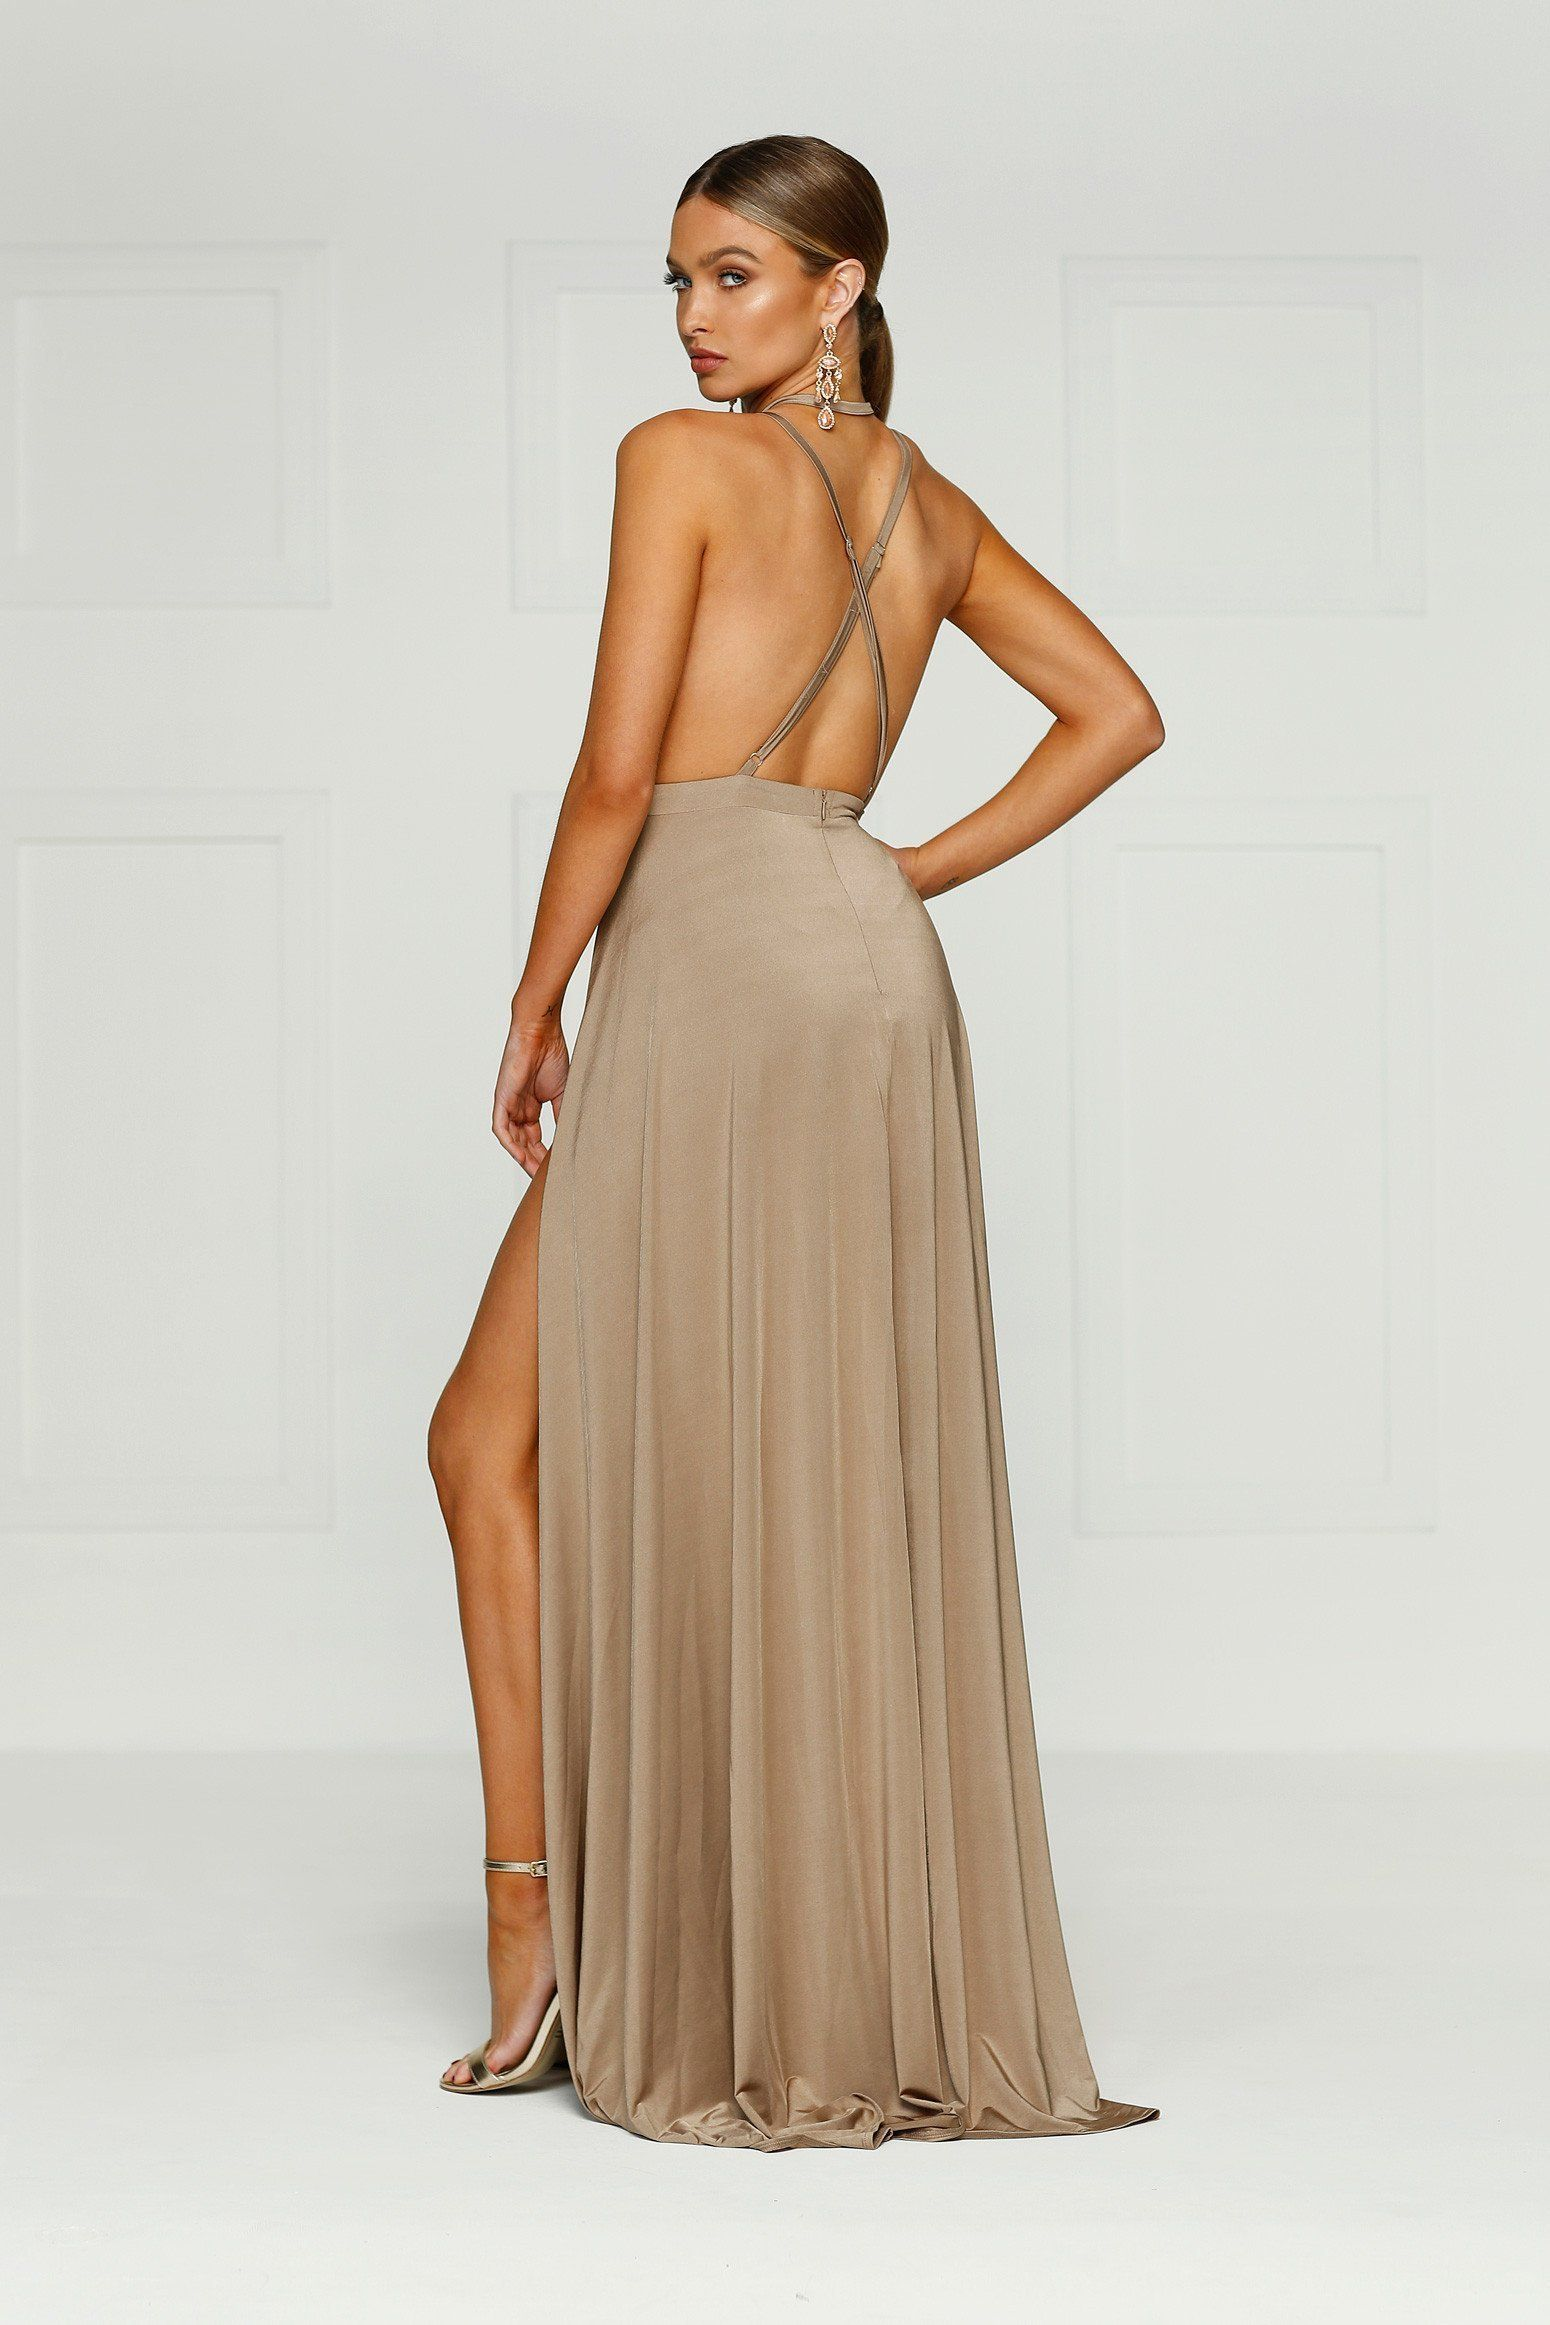 46f18a6252f520 anofficial Stella Jersey Gown - Bronze PRODUCT PAGE = https://anofficial.com